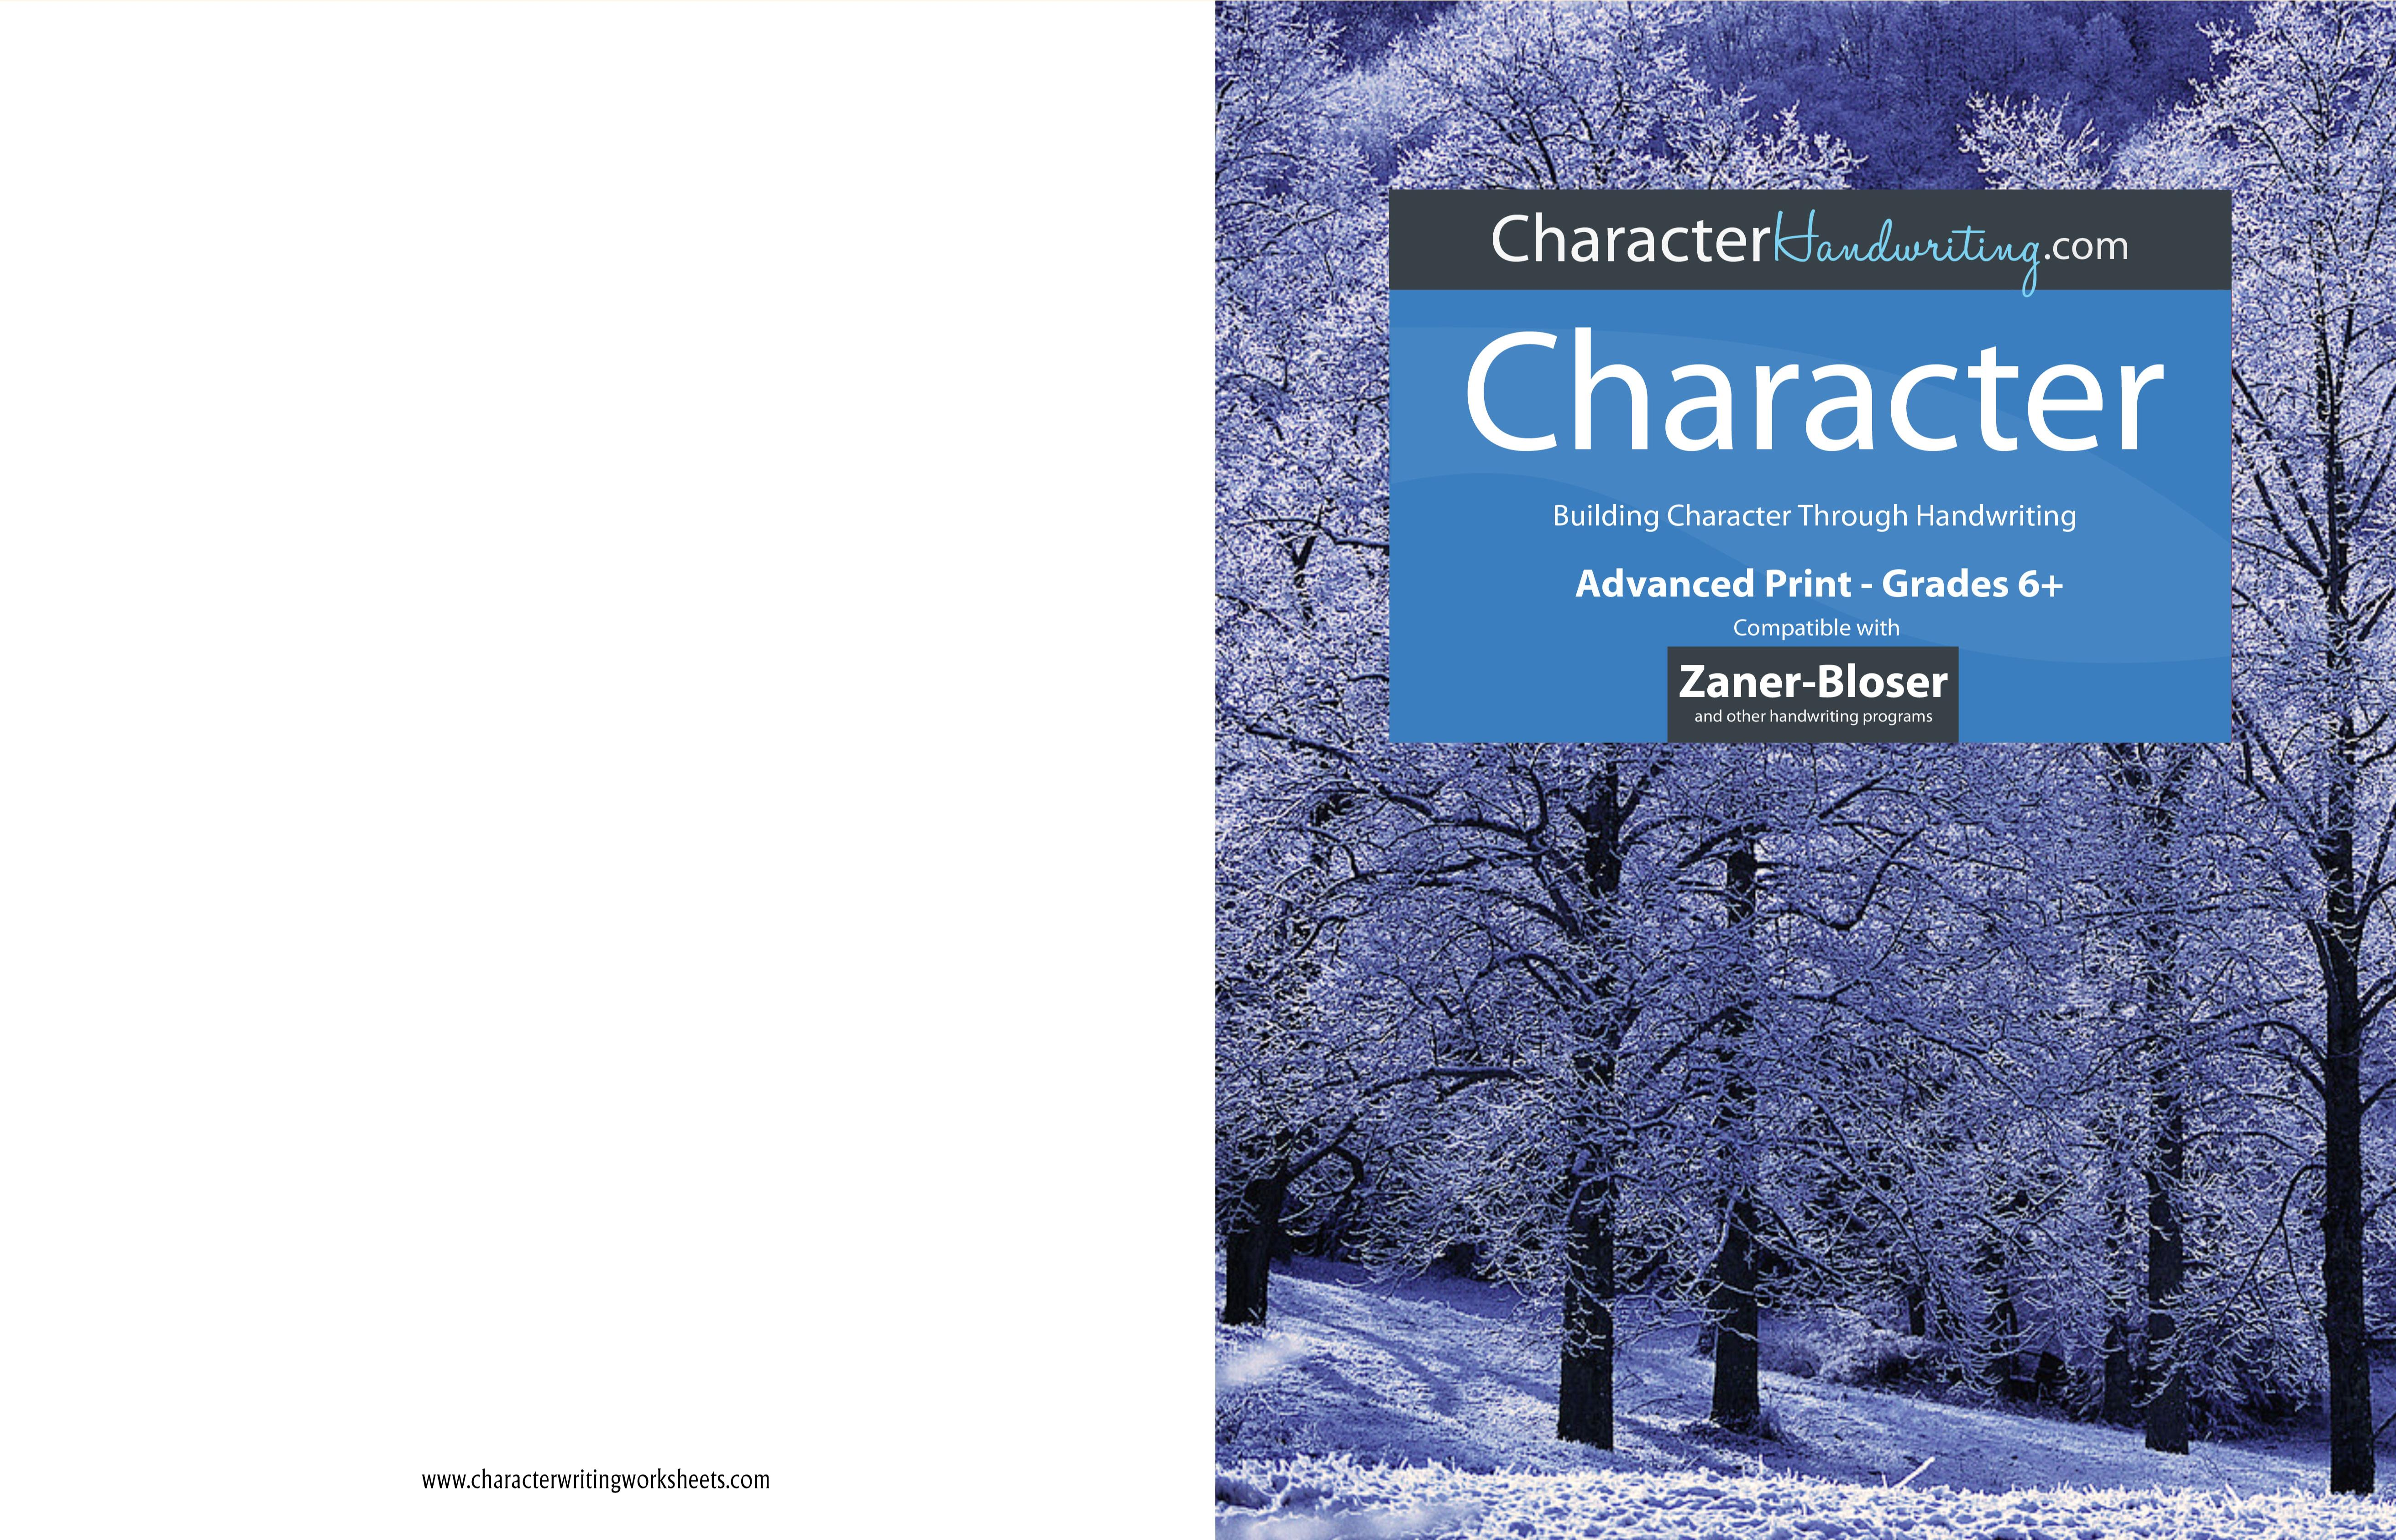 Character Zaner-Bloser - Advanced Print cover image